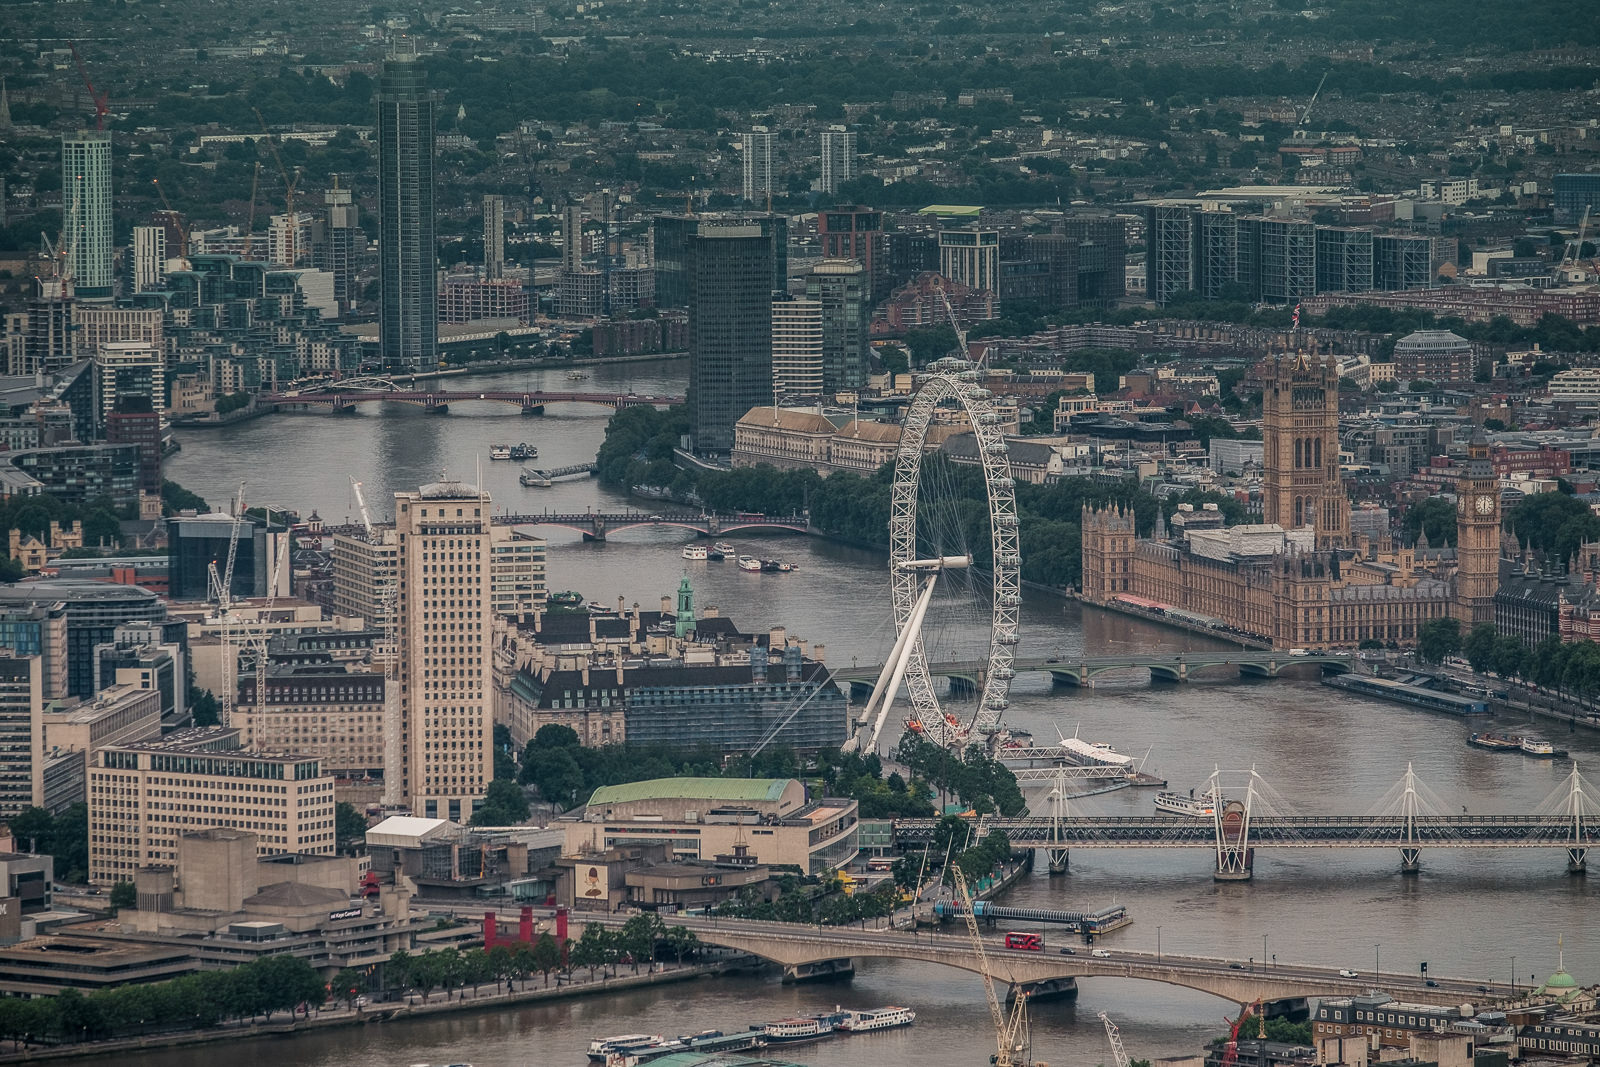 London Eye and Westminster, ISO400 50-140mm f5.6 1/250s